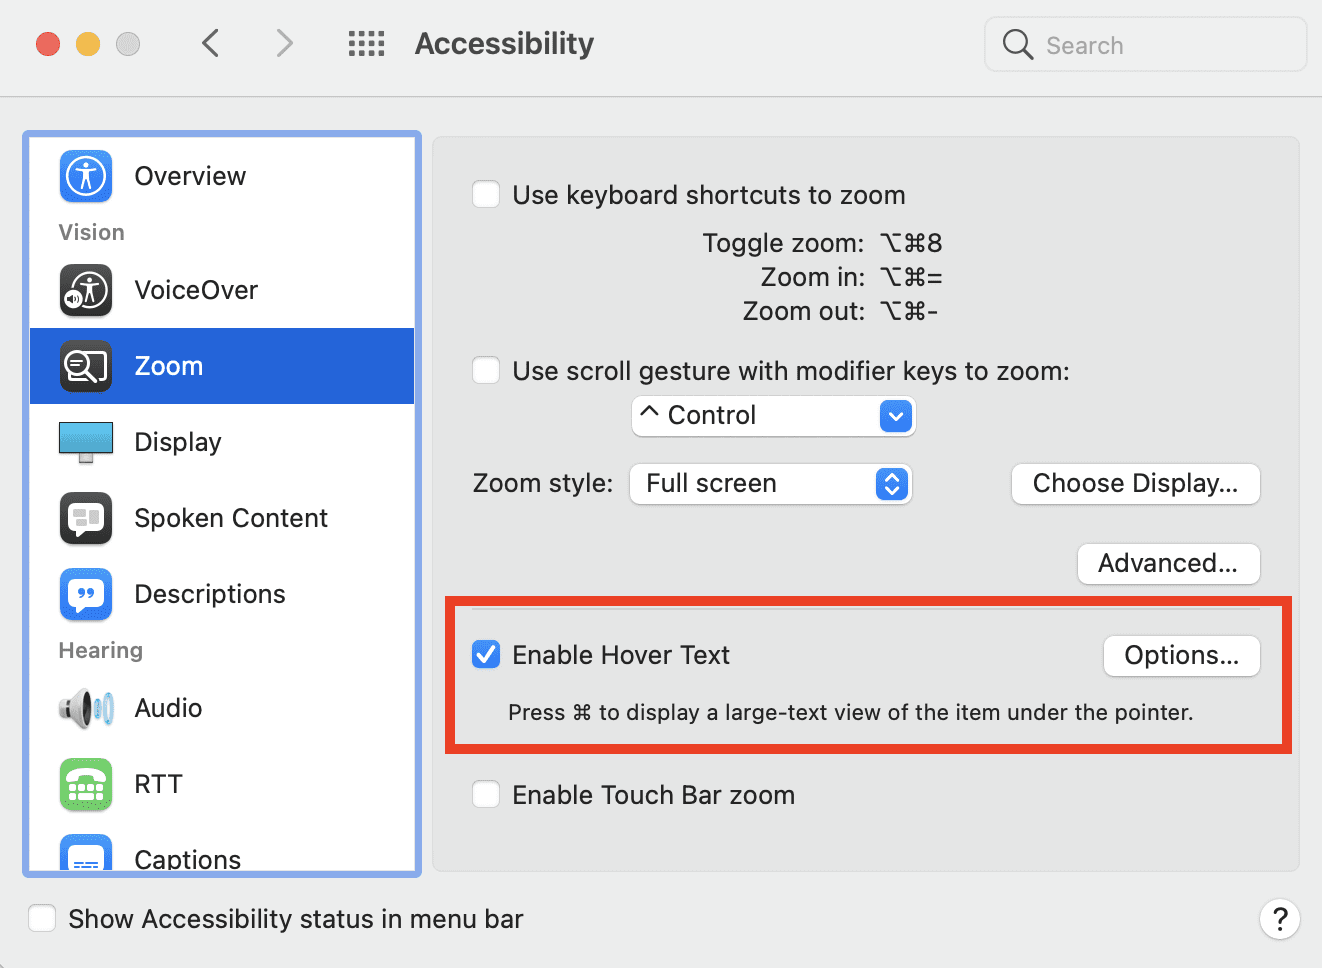 Hover Text is found in System Preferences > Accessibility > Zoom